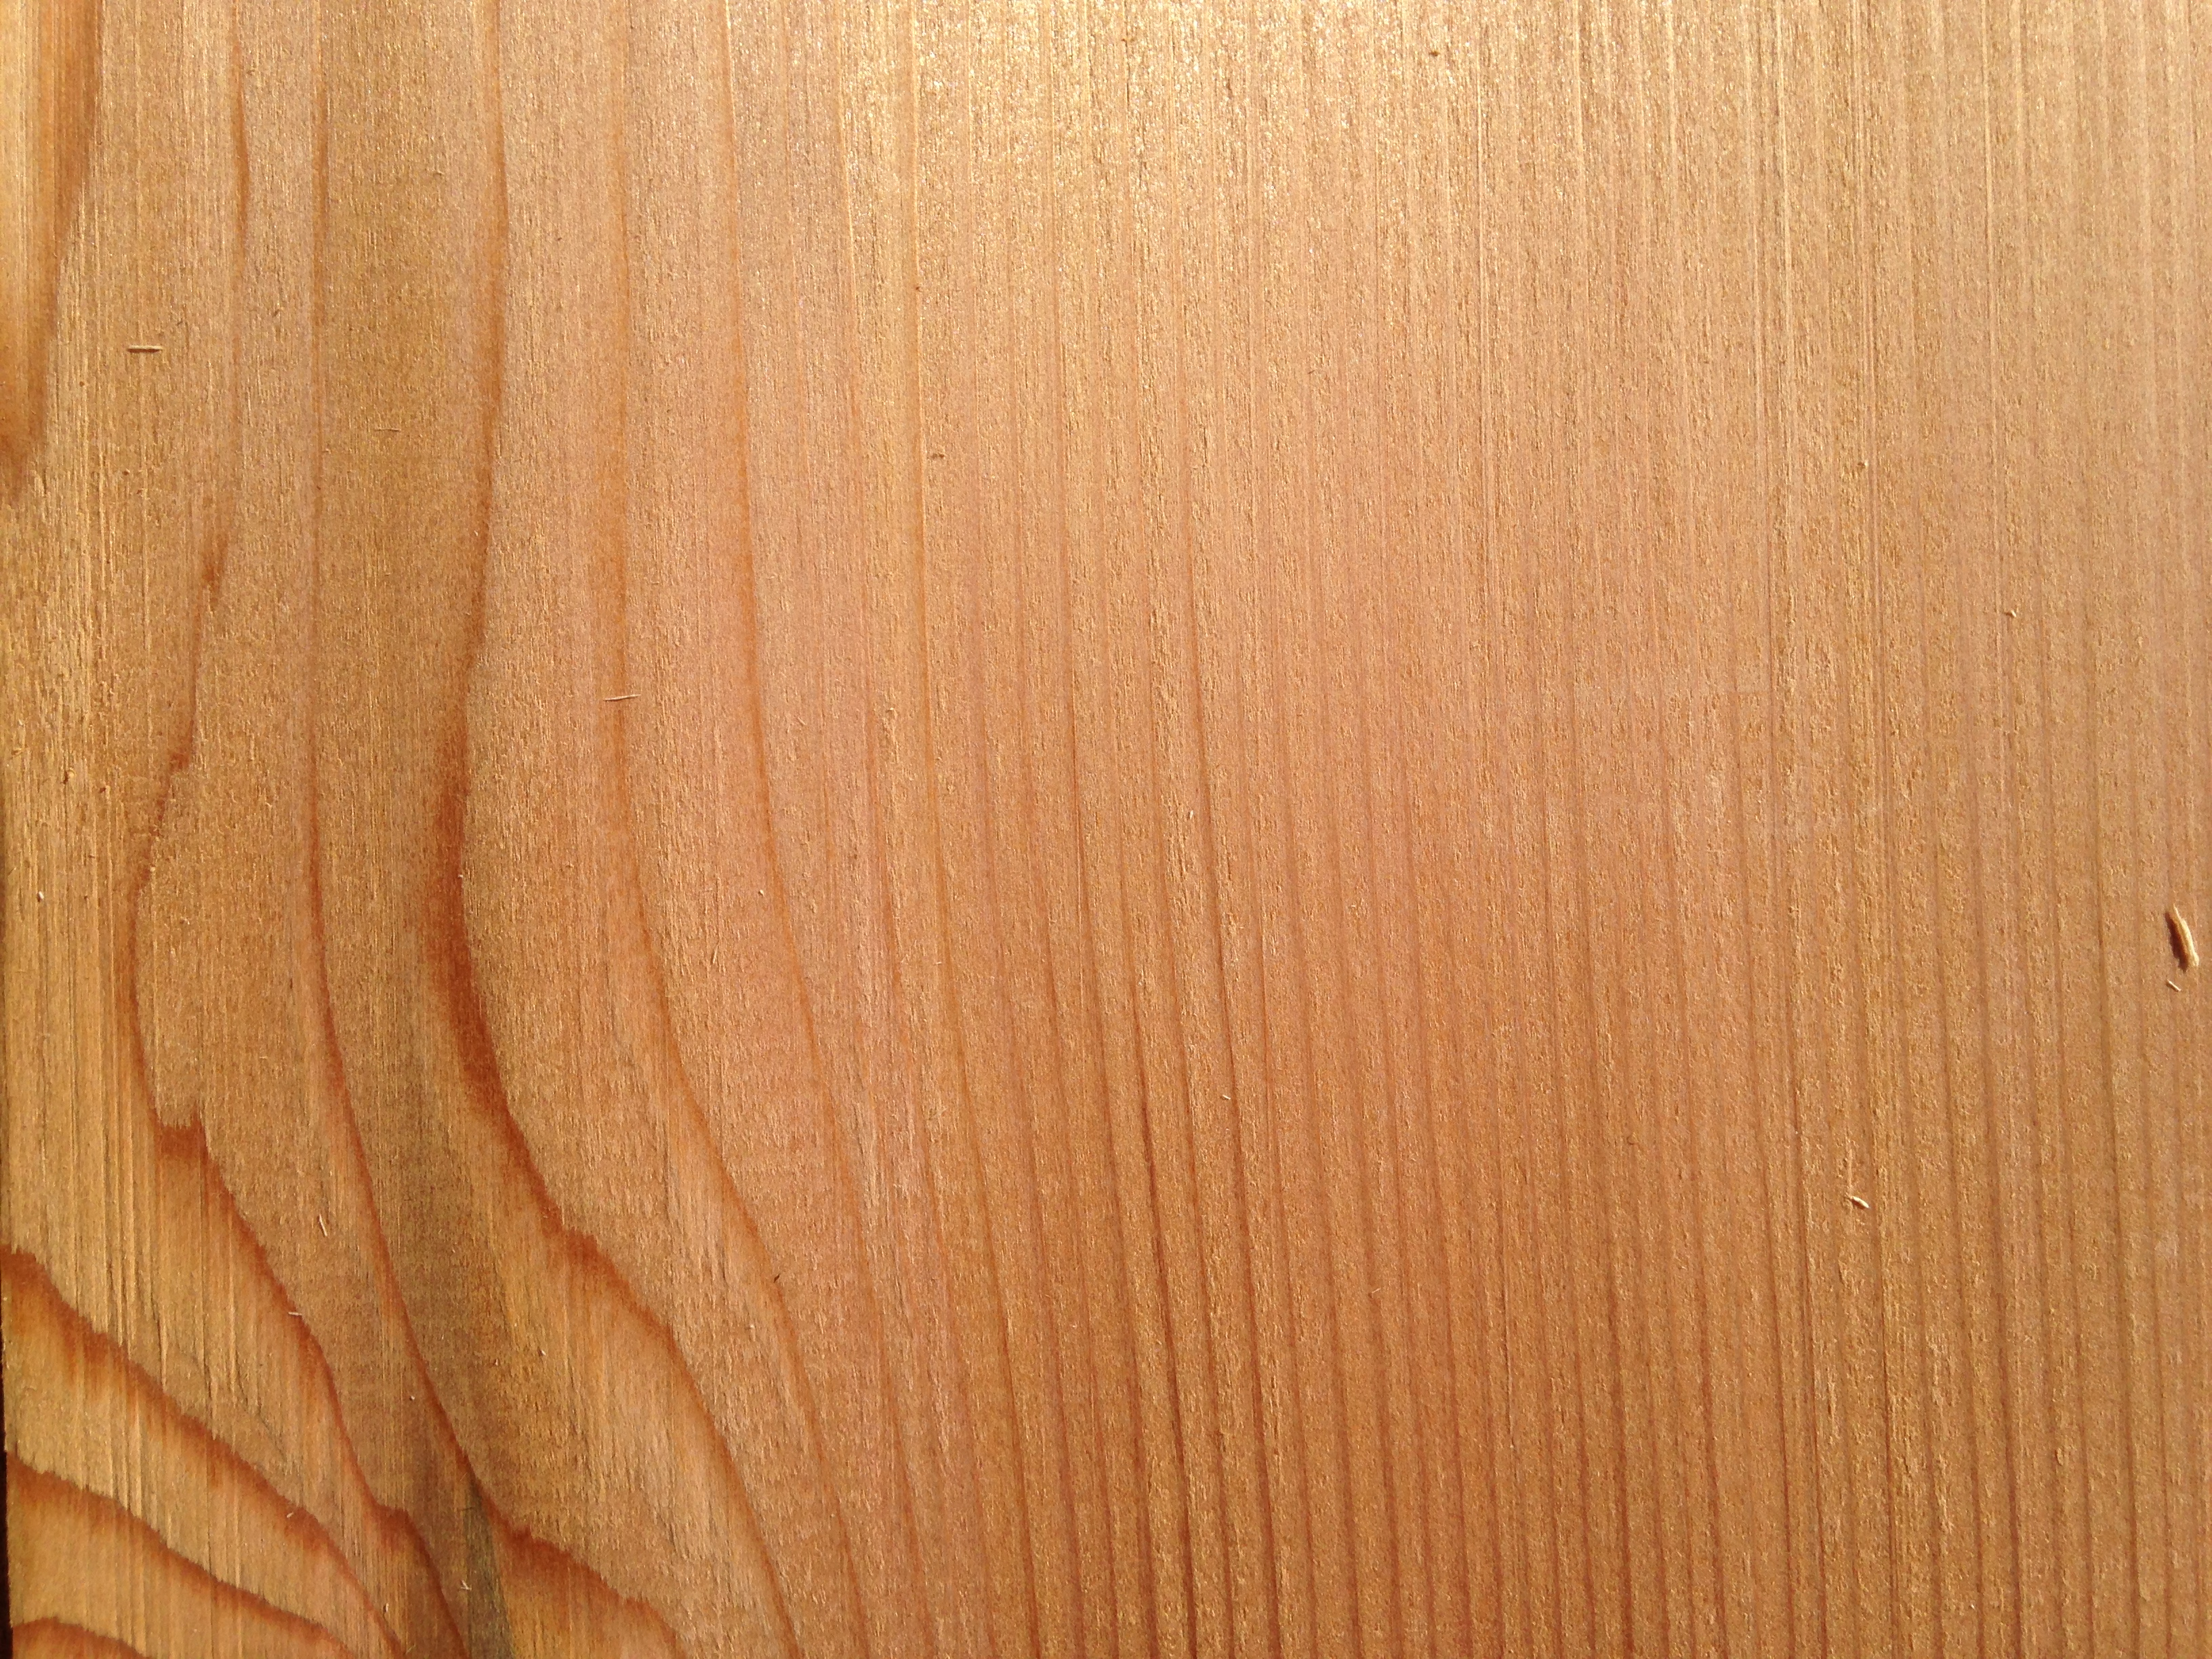 Western red cedar timber merchant uk timbersource